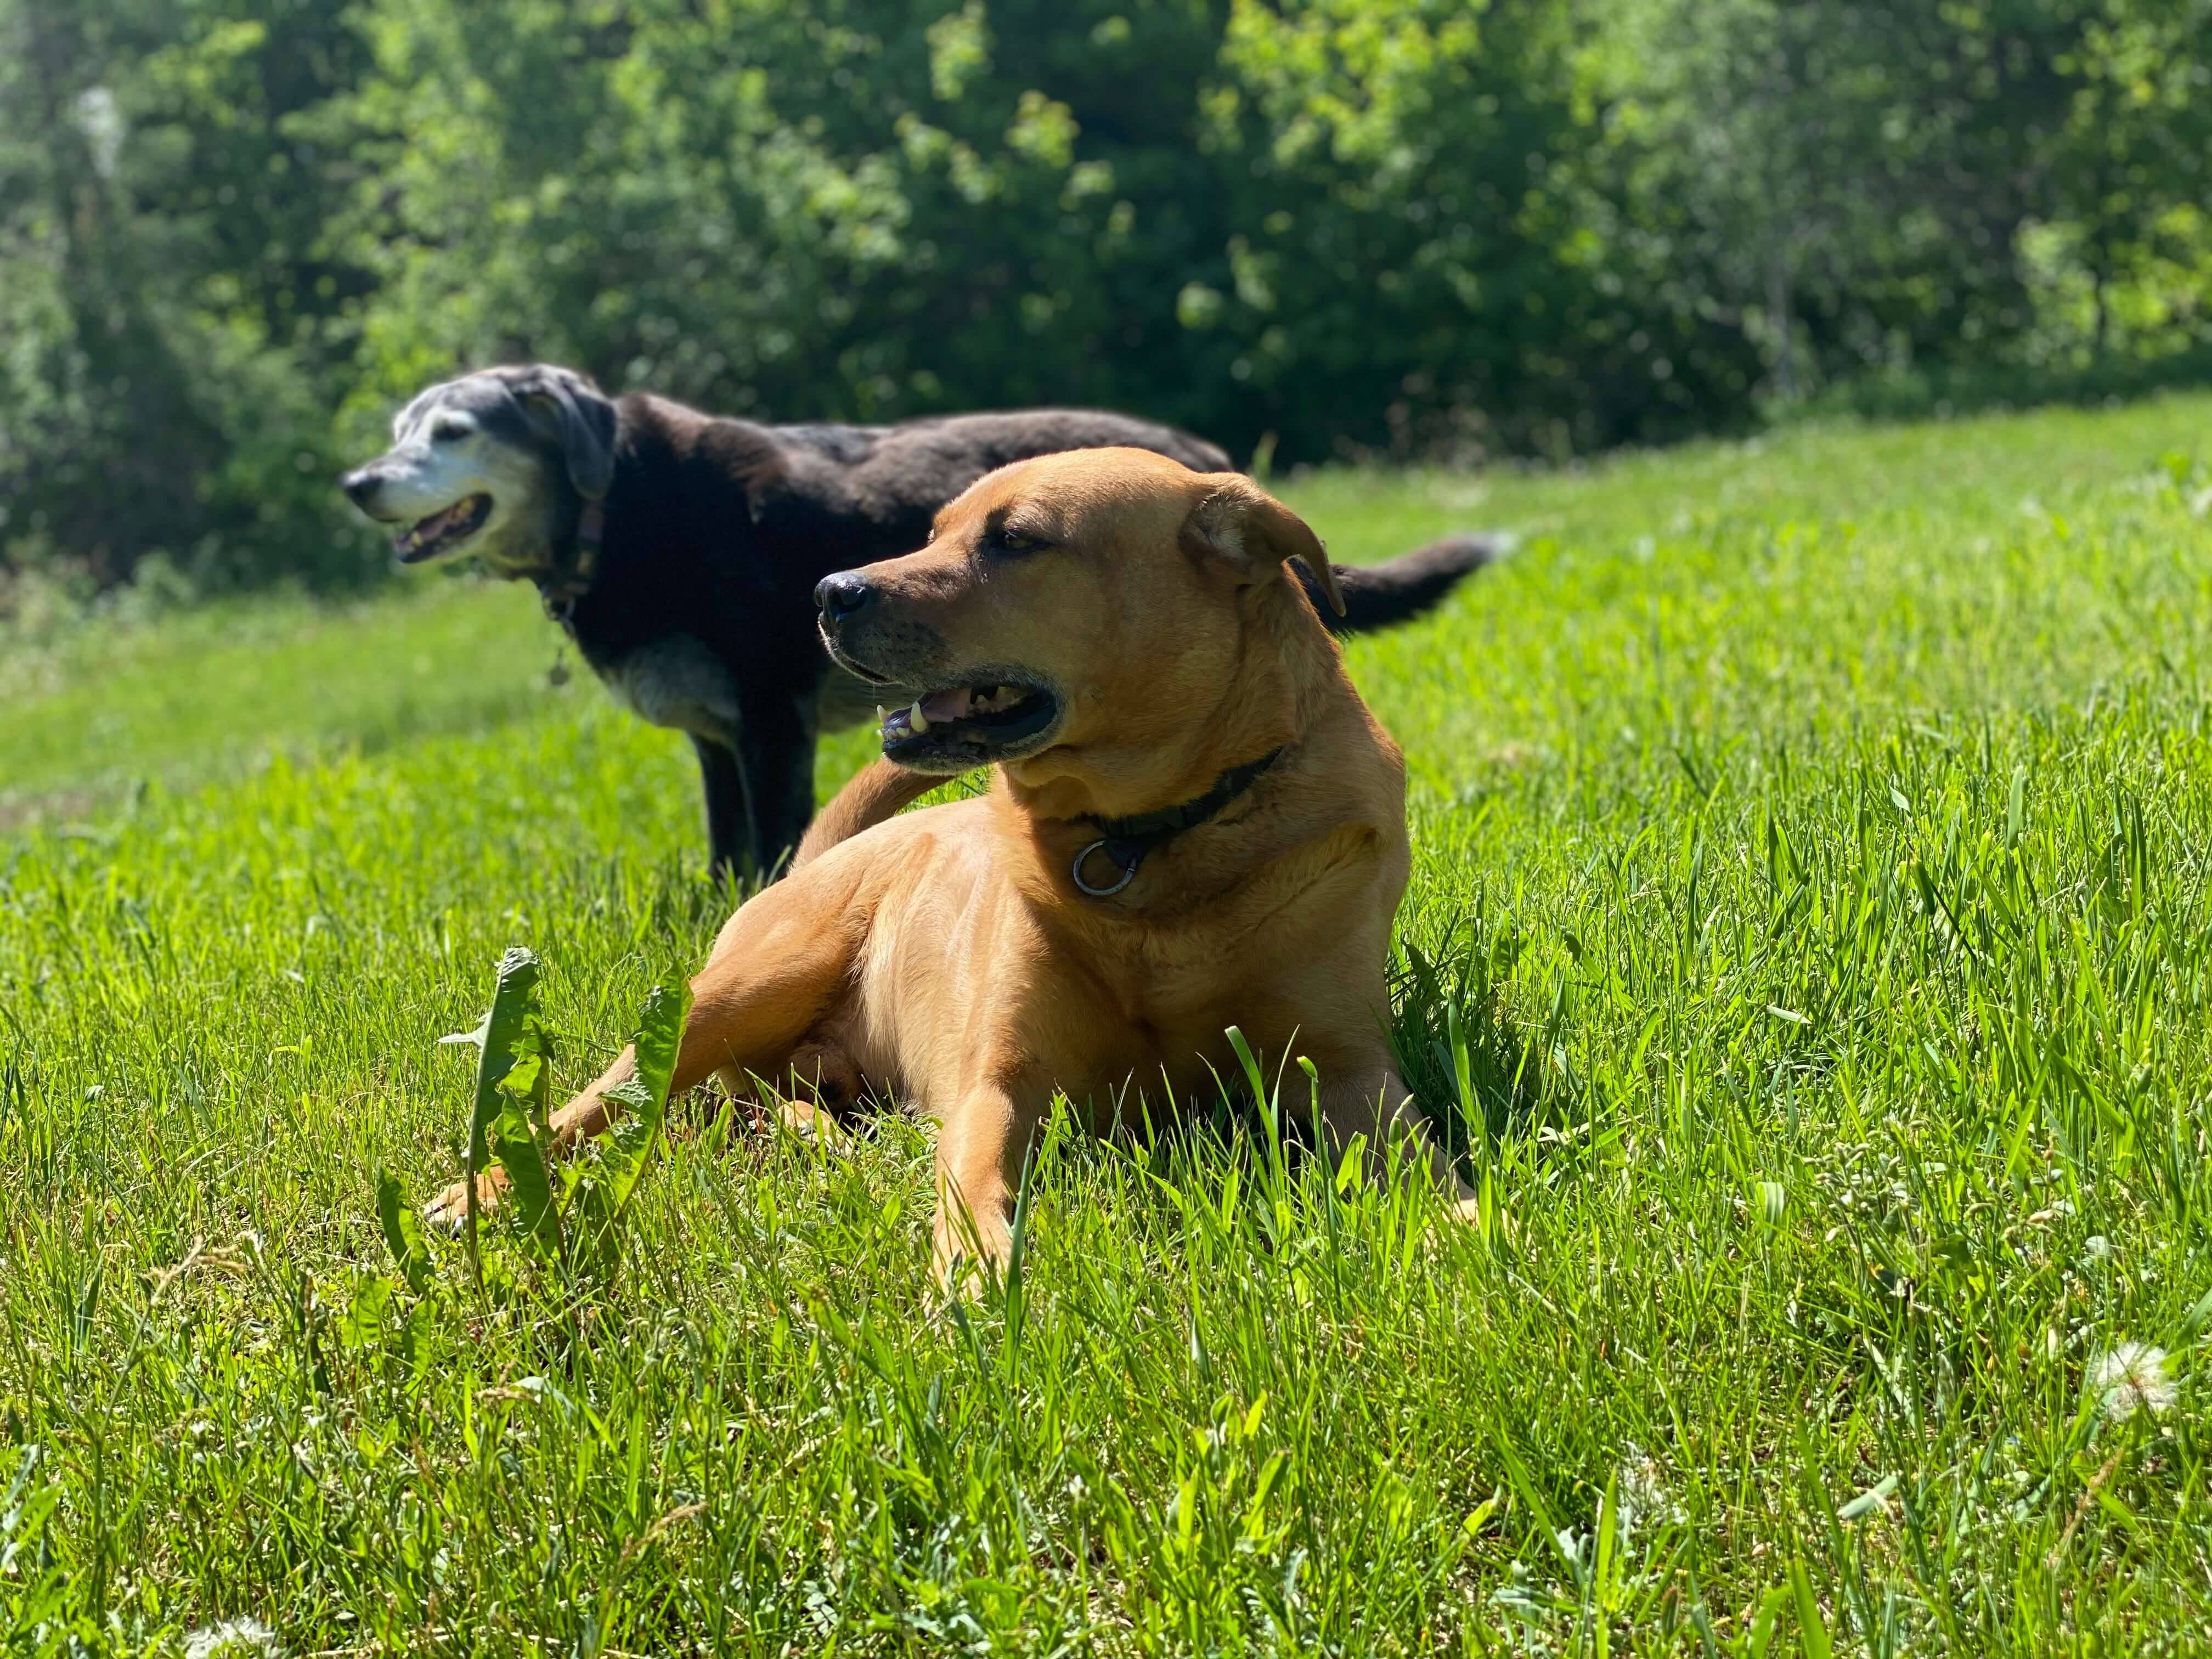 Rocky and Lilly, the Gervais' dogs in the grass.